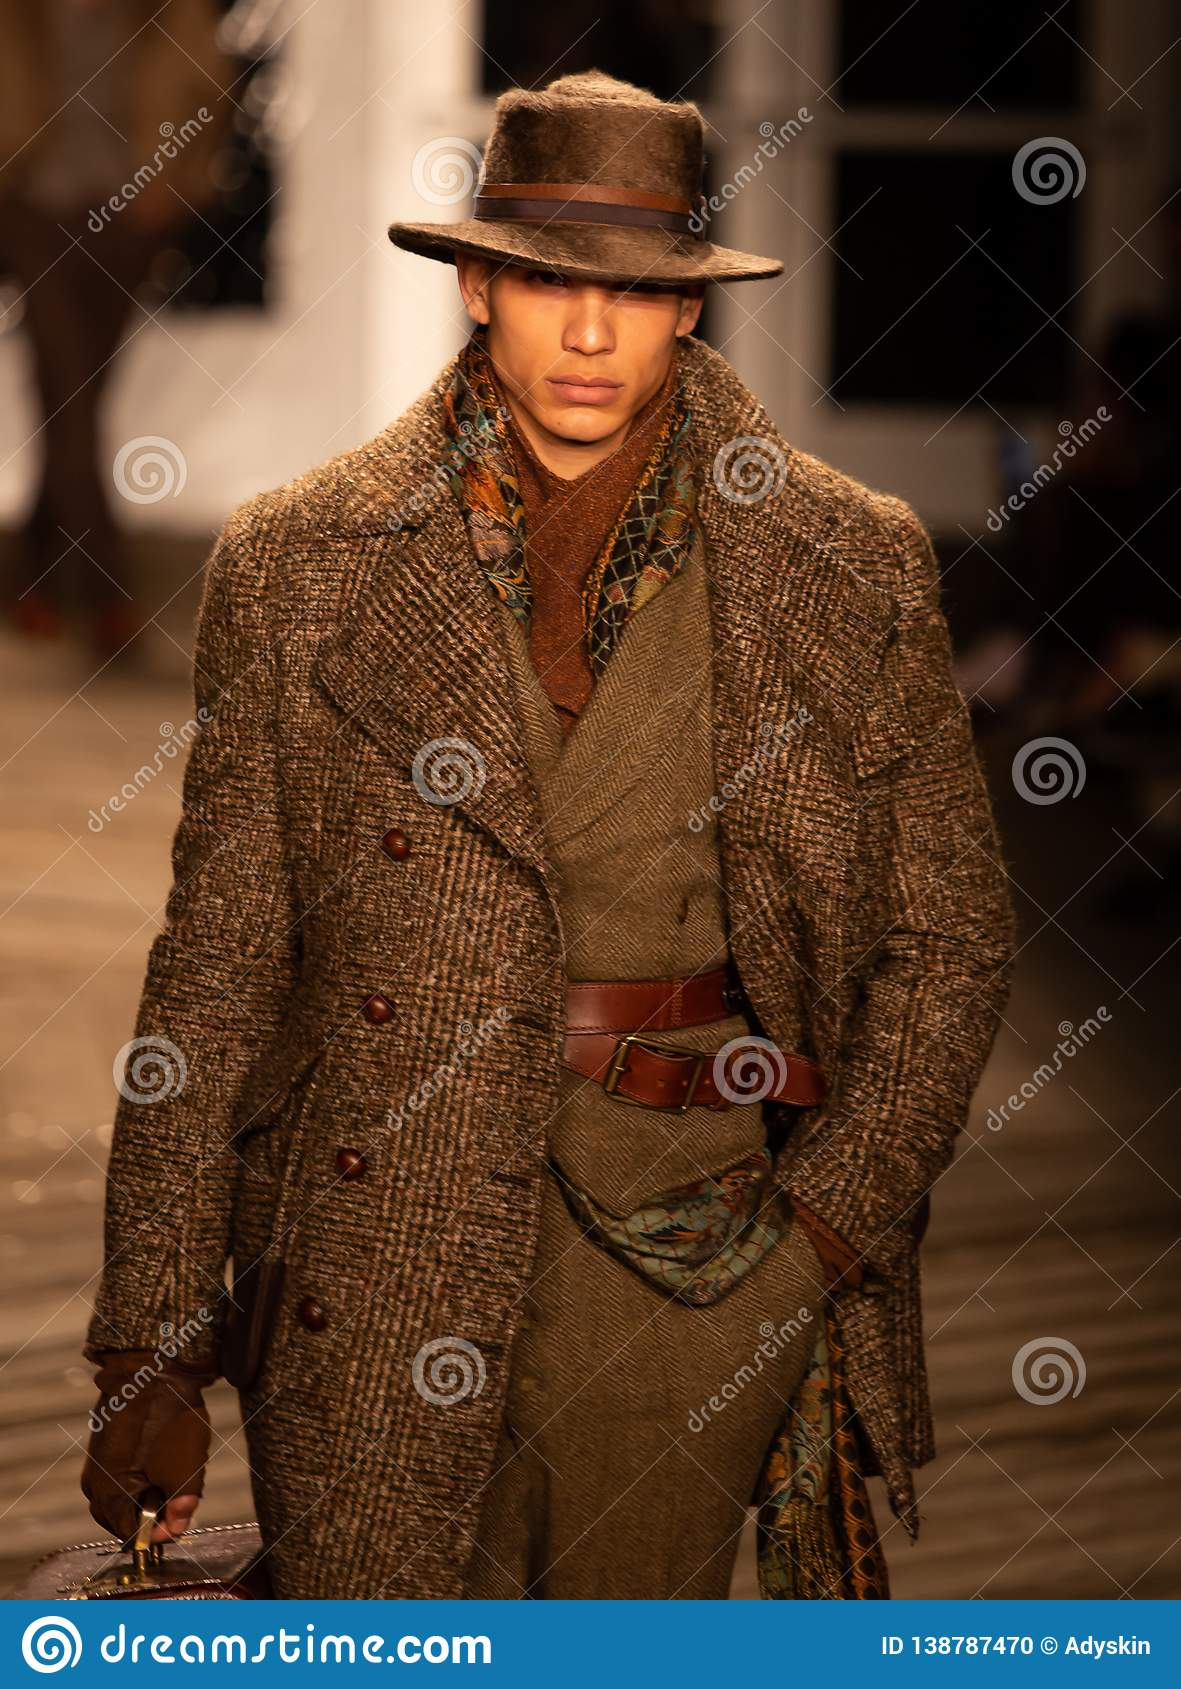 Joseph Abboud Mens Fall 2019 Fashion show as part of New York Fashion Week